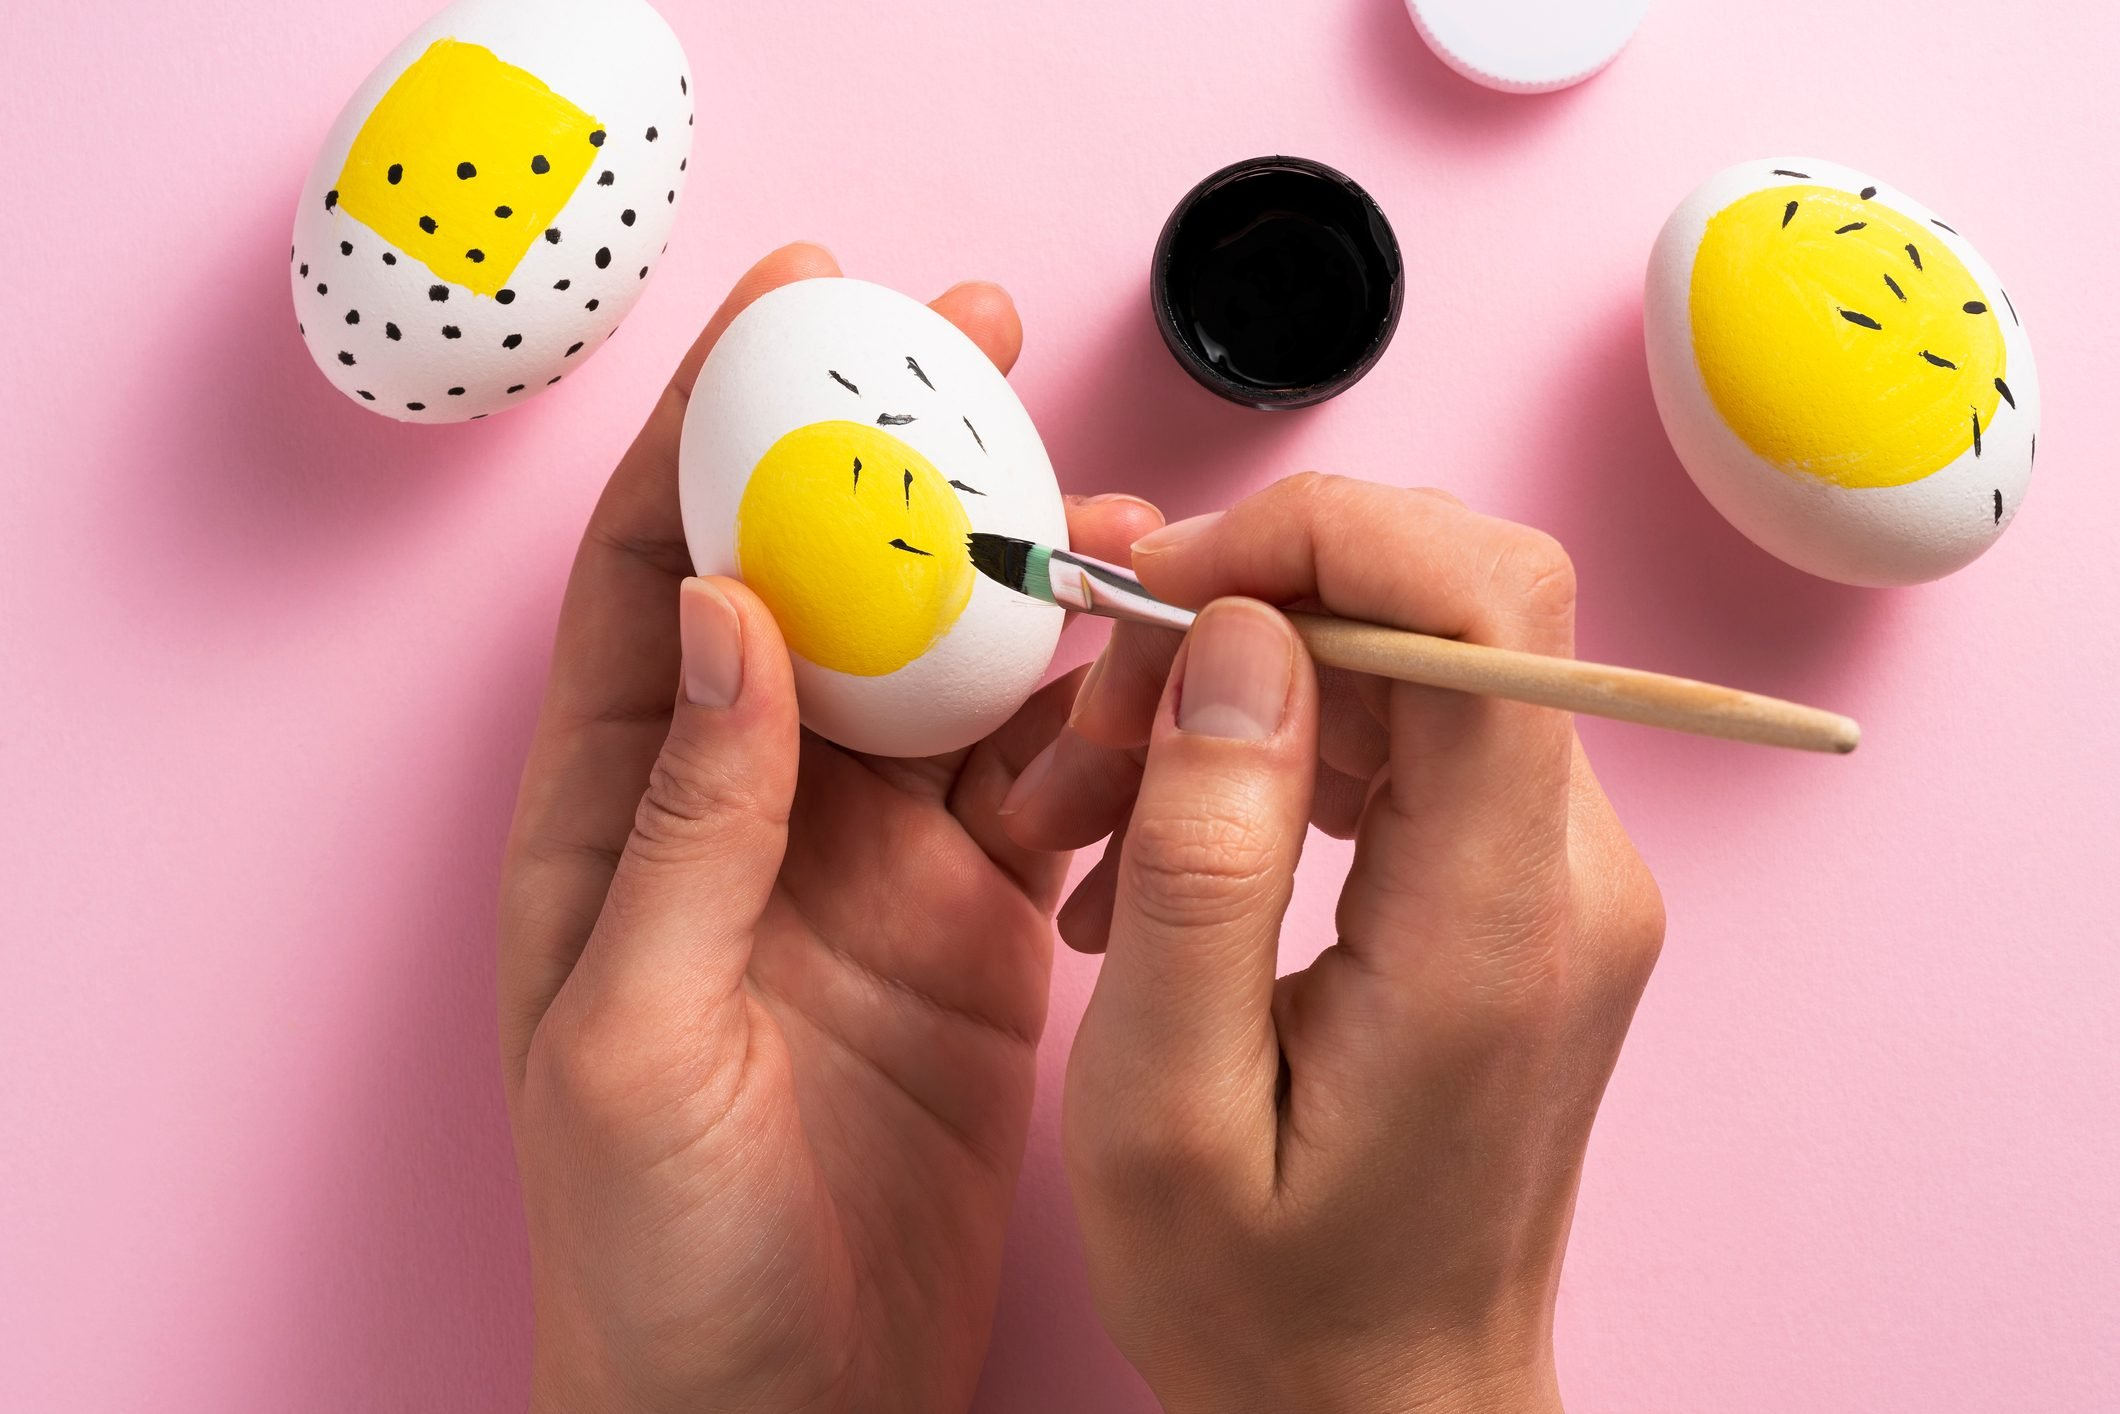 Painting easter eggs with a large yellow spot on each